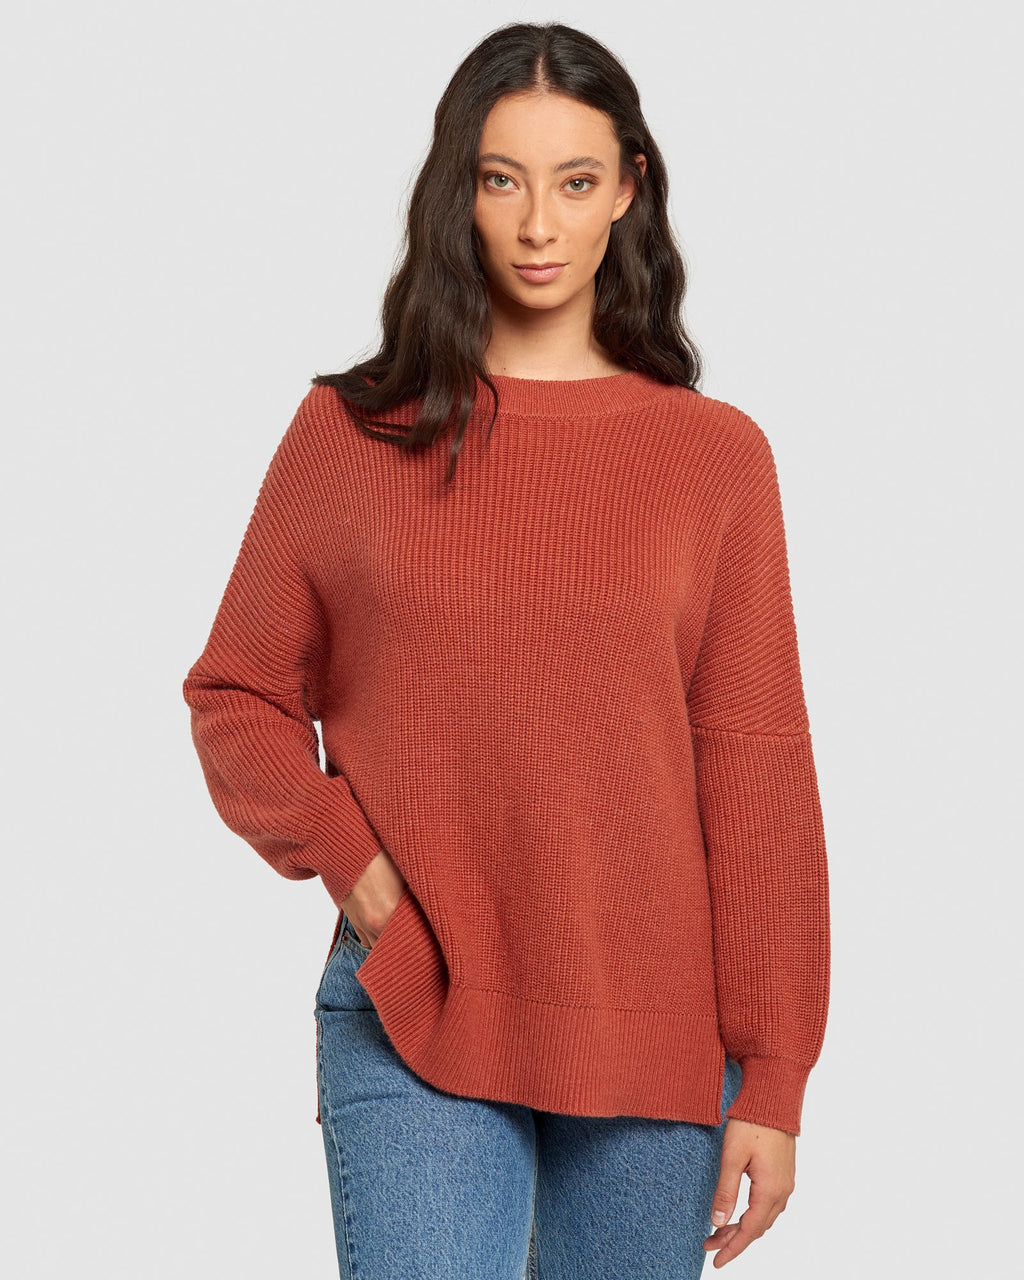 Maxted Seven Pullover - Terracotta